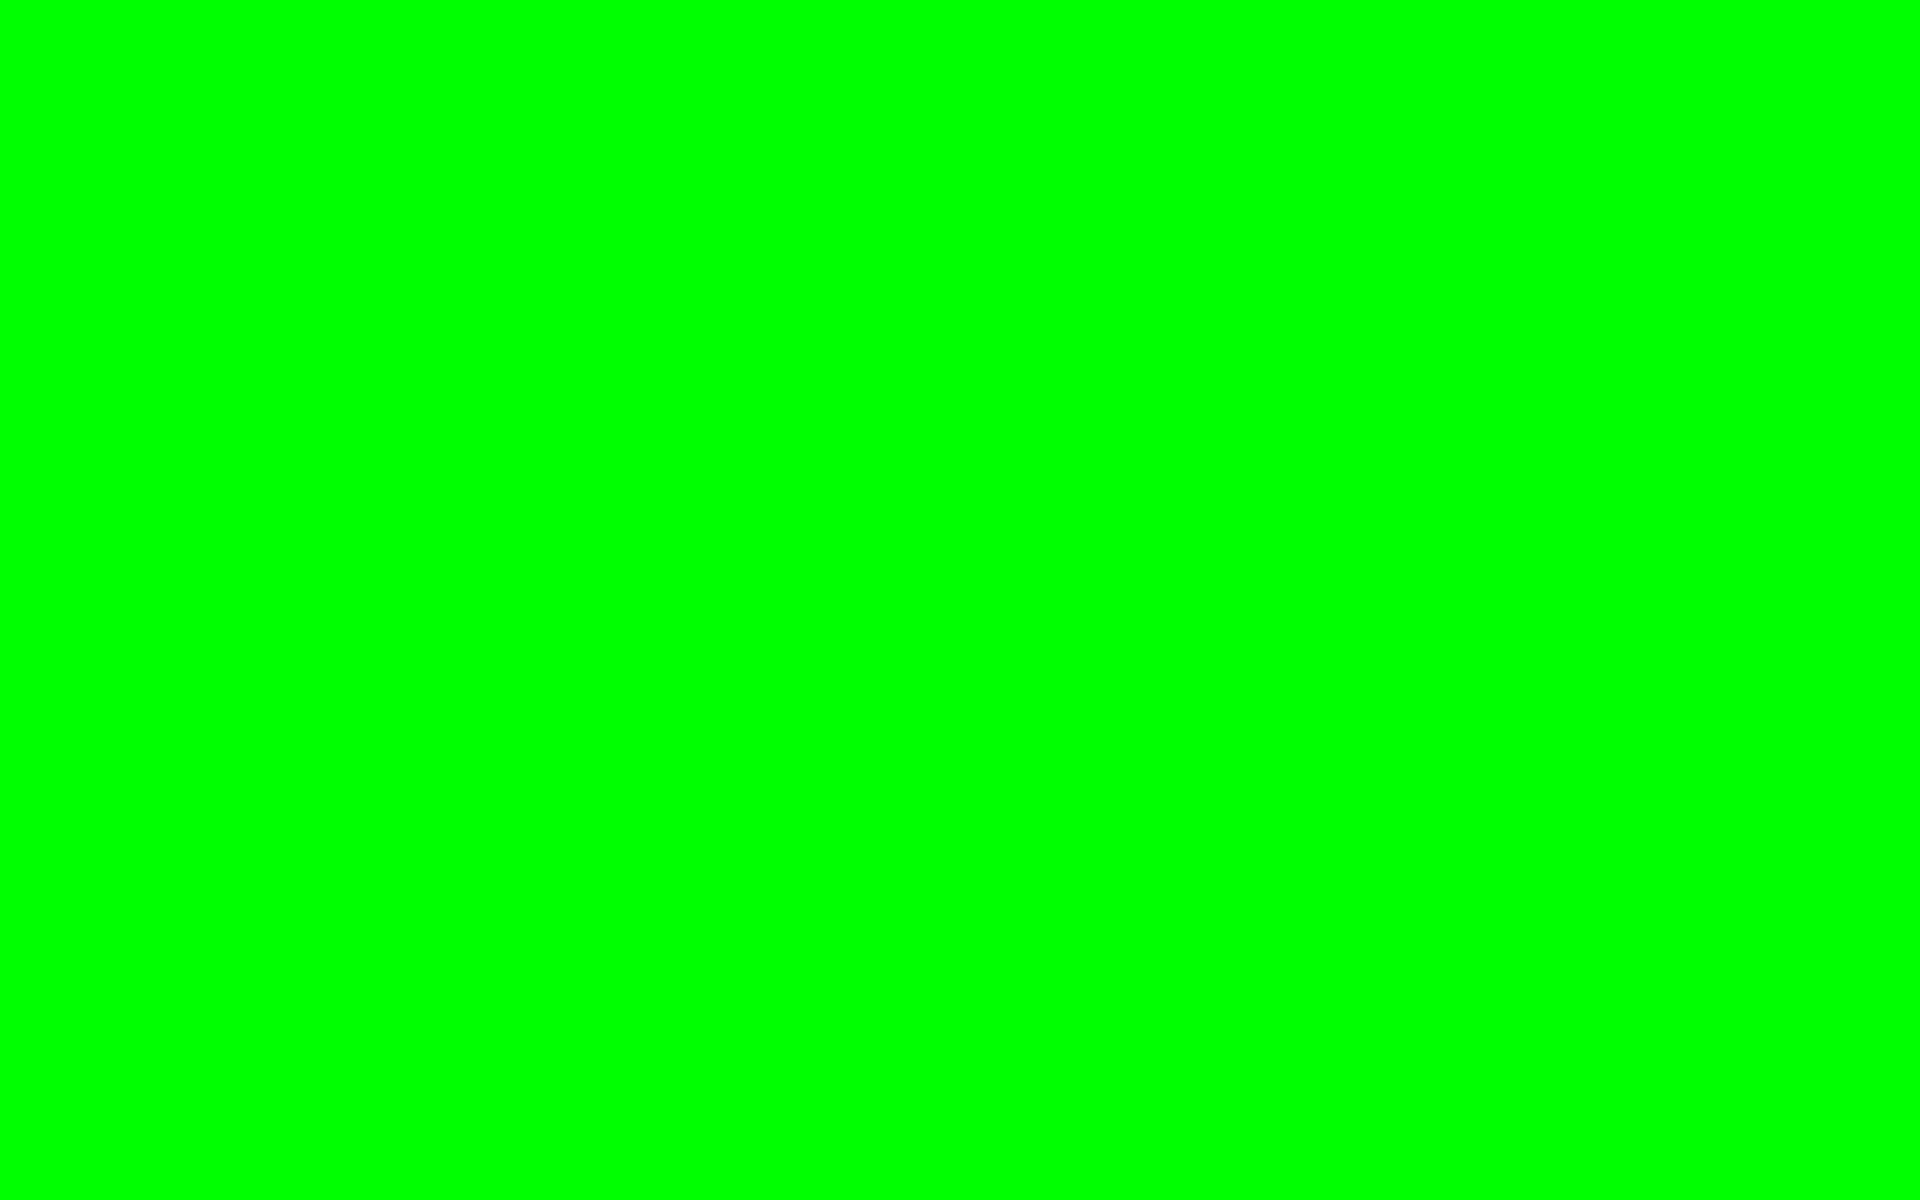 1920x1200 Lime Web Green Solid Color Background